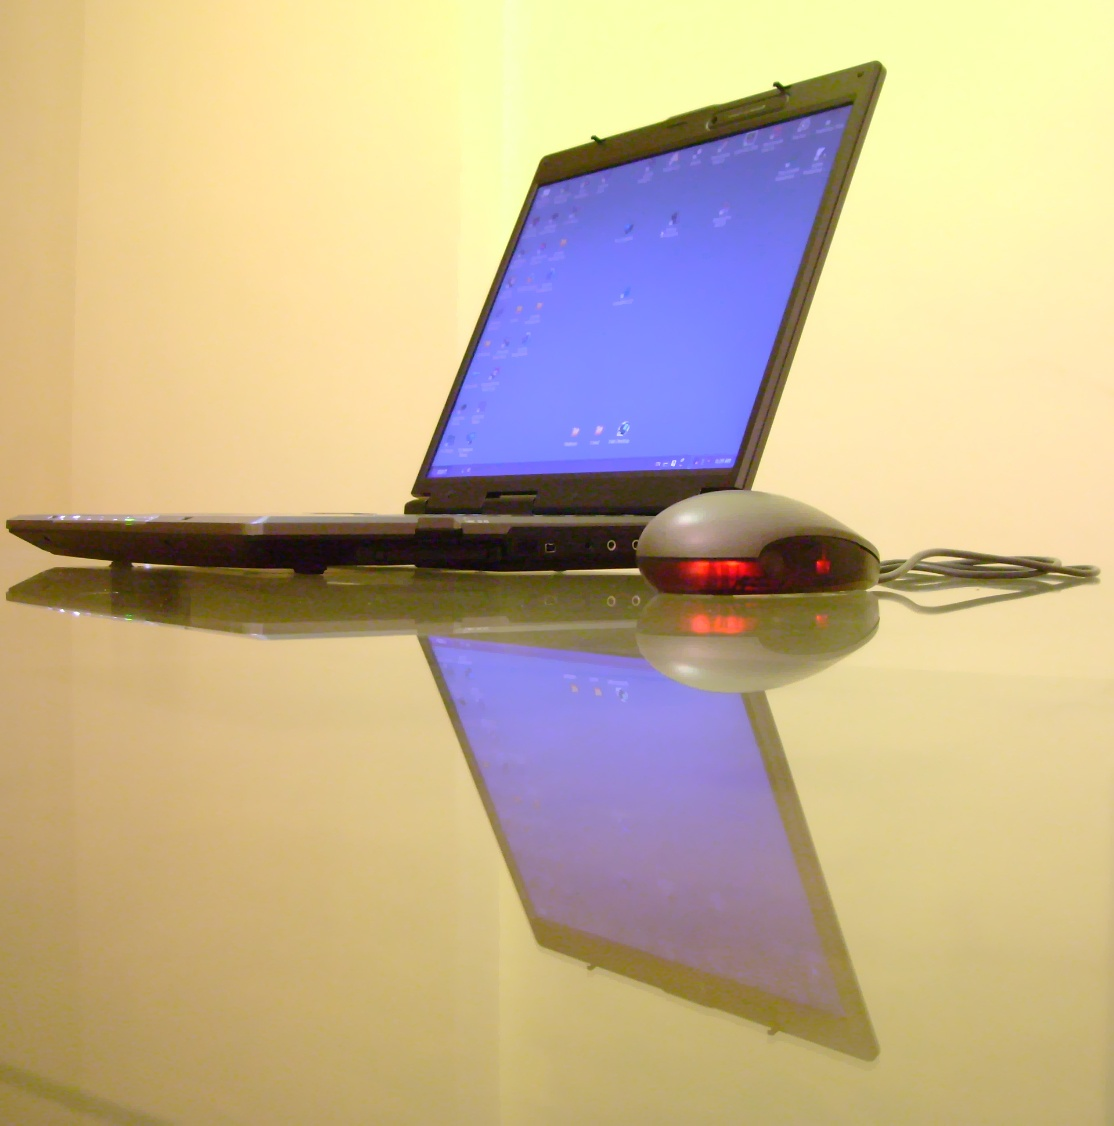 Dell Laptop Prices – Laptops That Offer Powerful Performance at a Reasonable Price